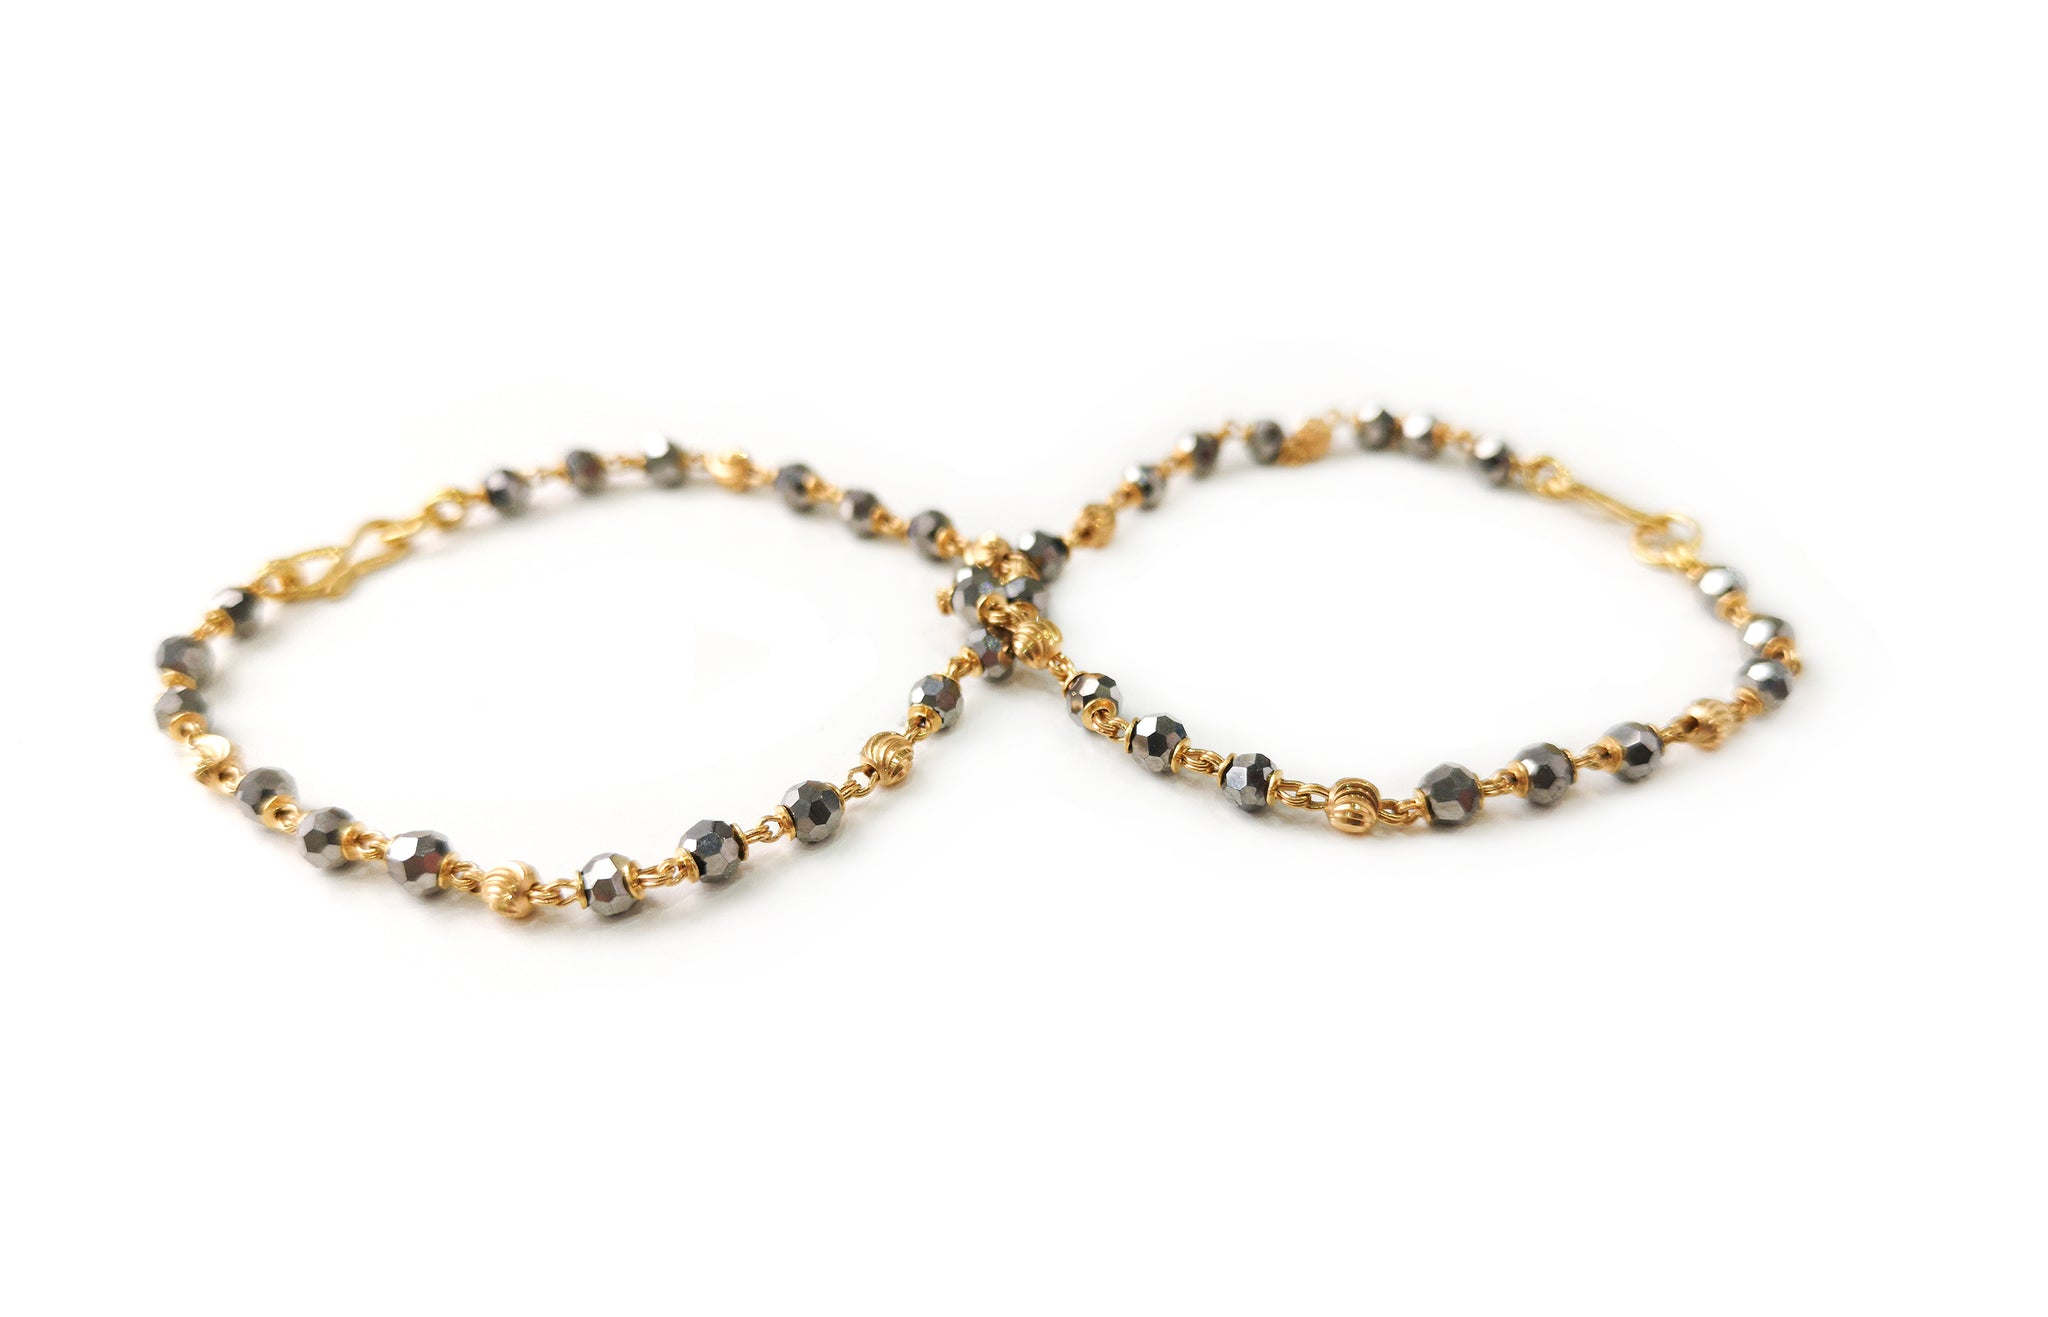 22ct Gold Children's Bracelets with Faceted Crystals and Diamond Cut Gold Beads CBR-7716